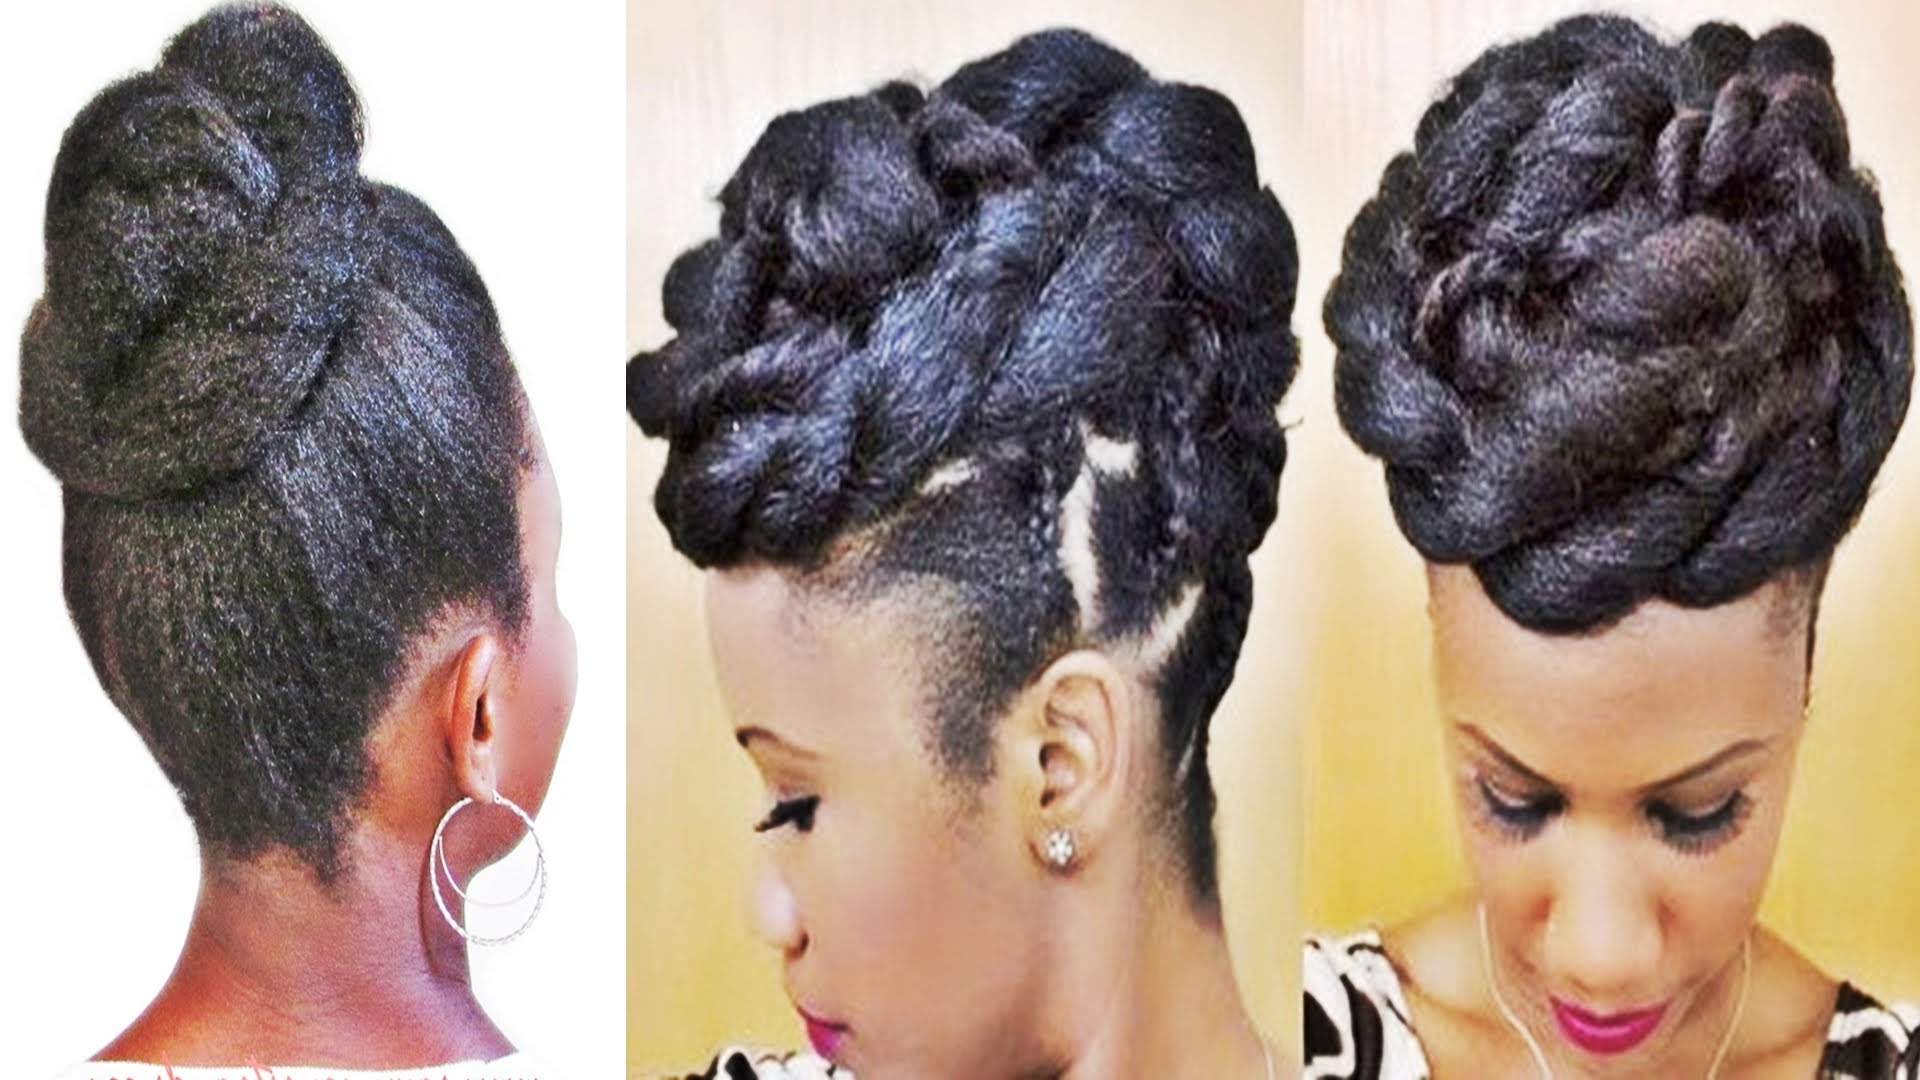 Well Known Black Updo Braided Hairstyles Intended For Braids And Twists Updo Hairstyle For Black Women – Youtube (View 12 of 15)